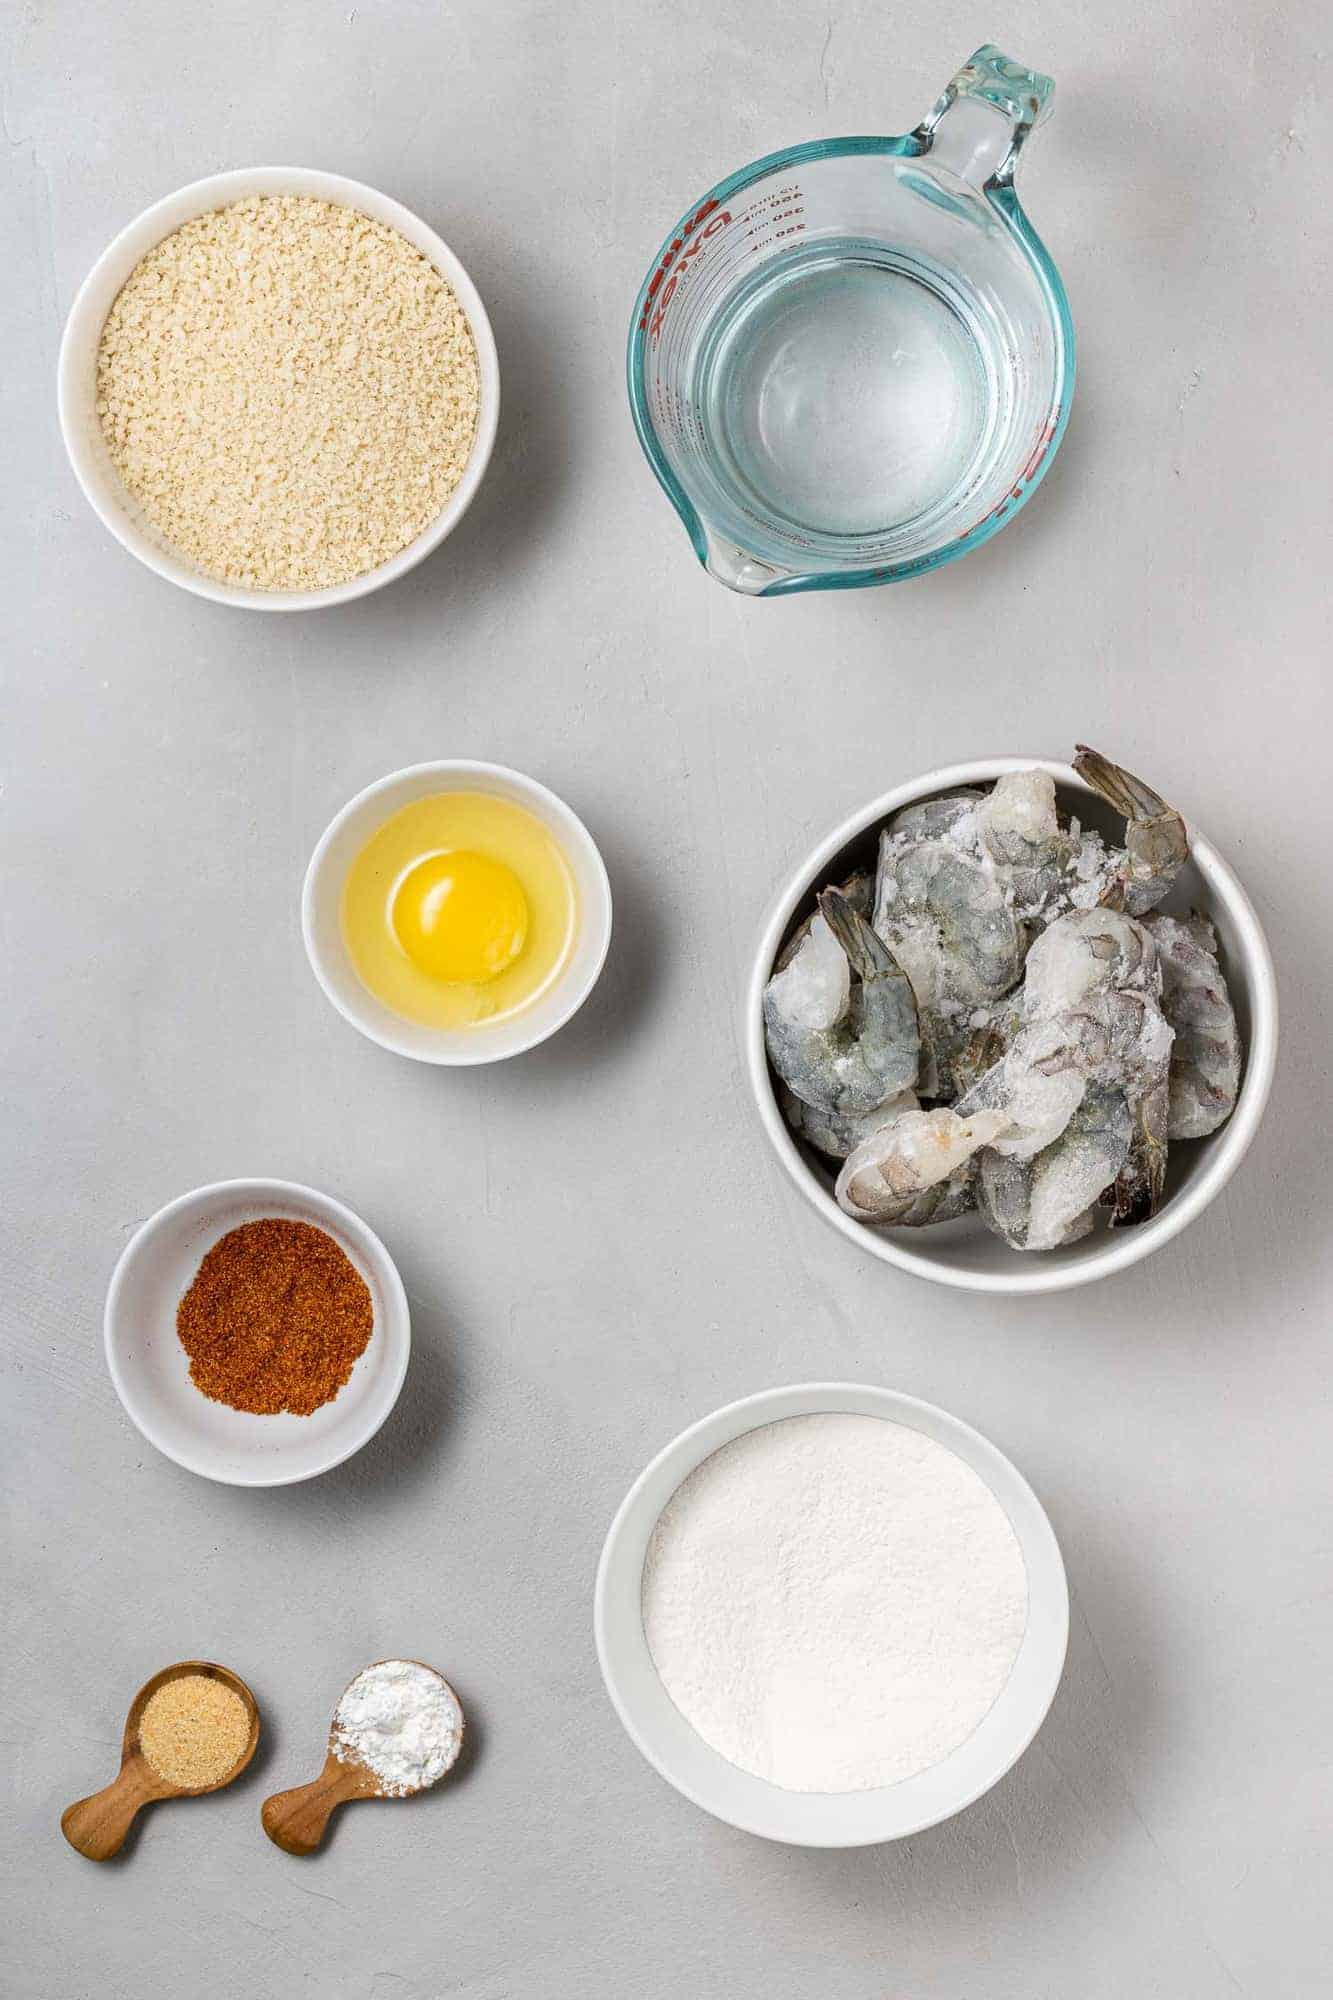 Overhead view of ingredients needed, including raw shrimp.